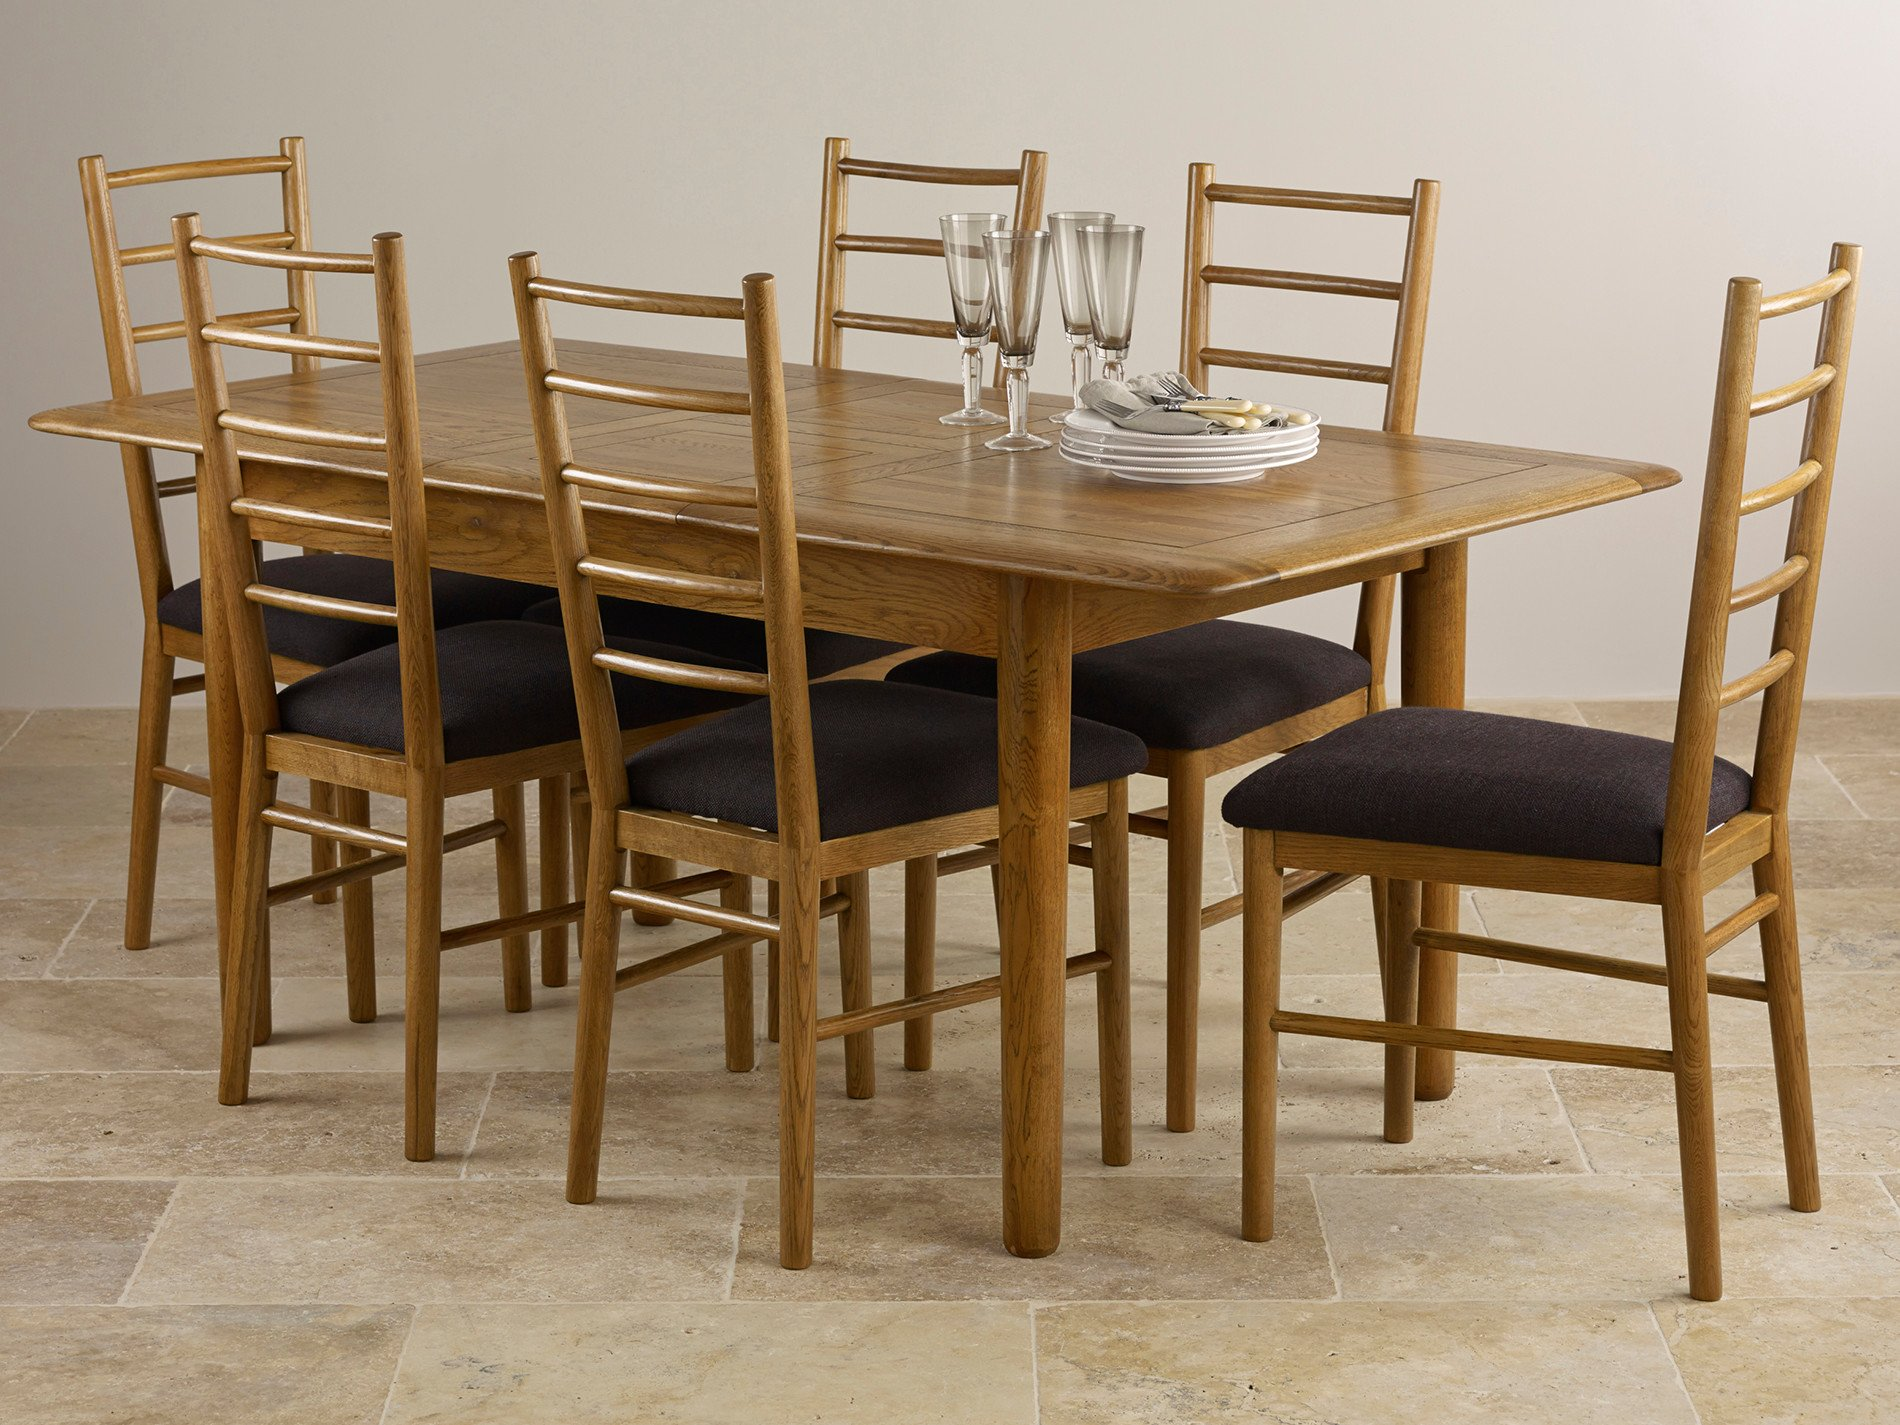 cosgrove extendable oak dining table and 6 charcoal chairs. #694418 extending dining table 6 osaka rustic solid oak and charcoal plain 503219001425 2017 cosgrove extendable chairs x